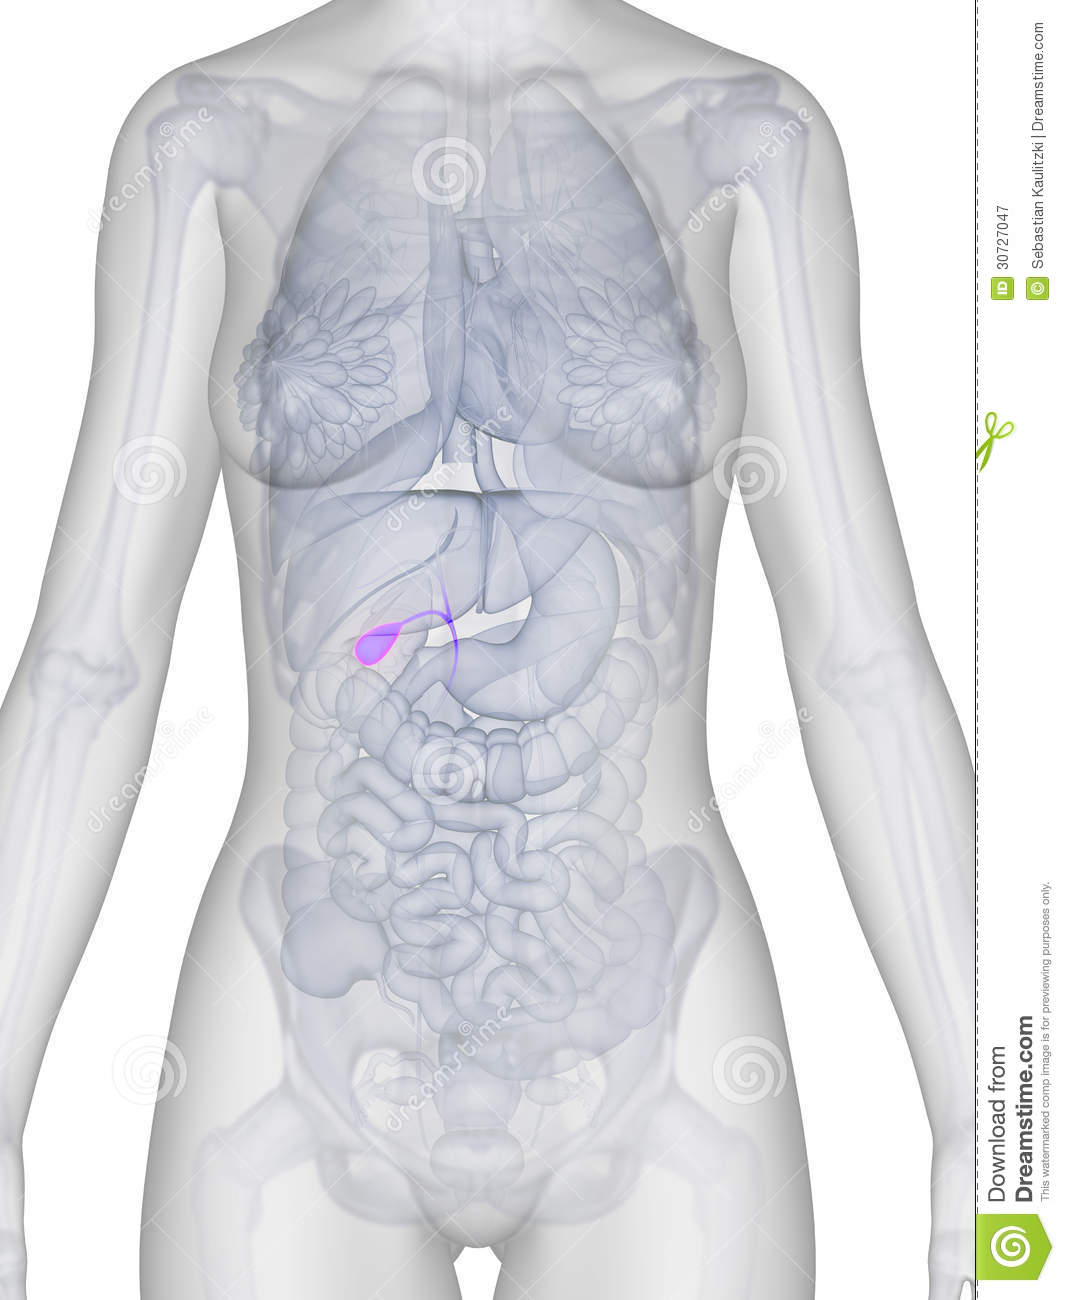 Female Anatomy Gallbladder Stock Illustration Illustration Of